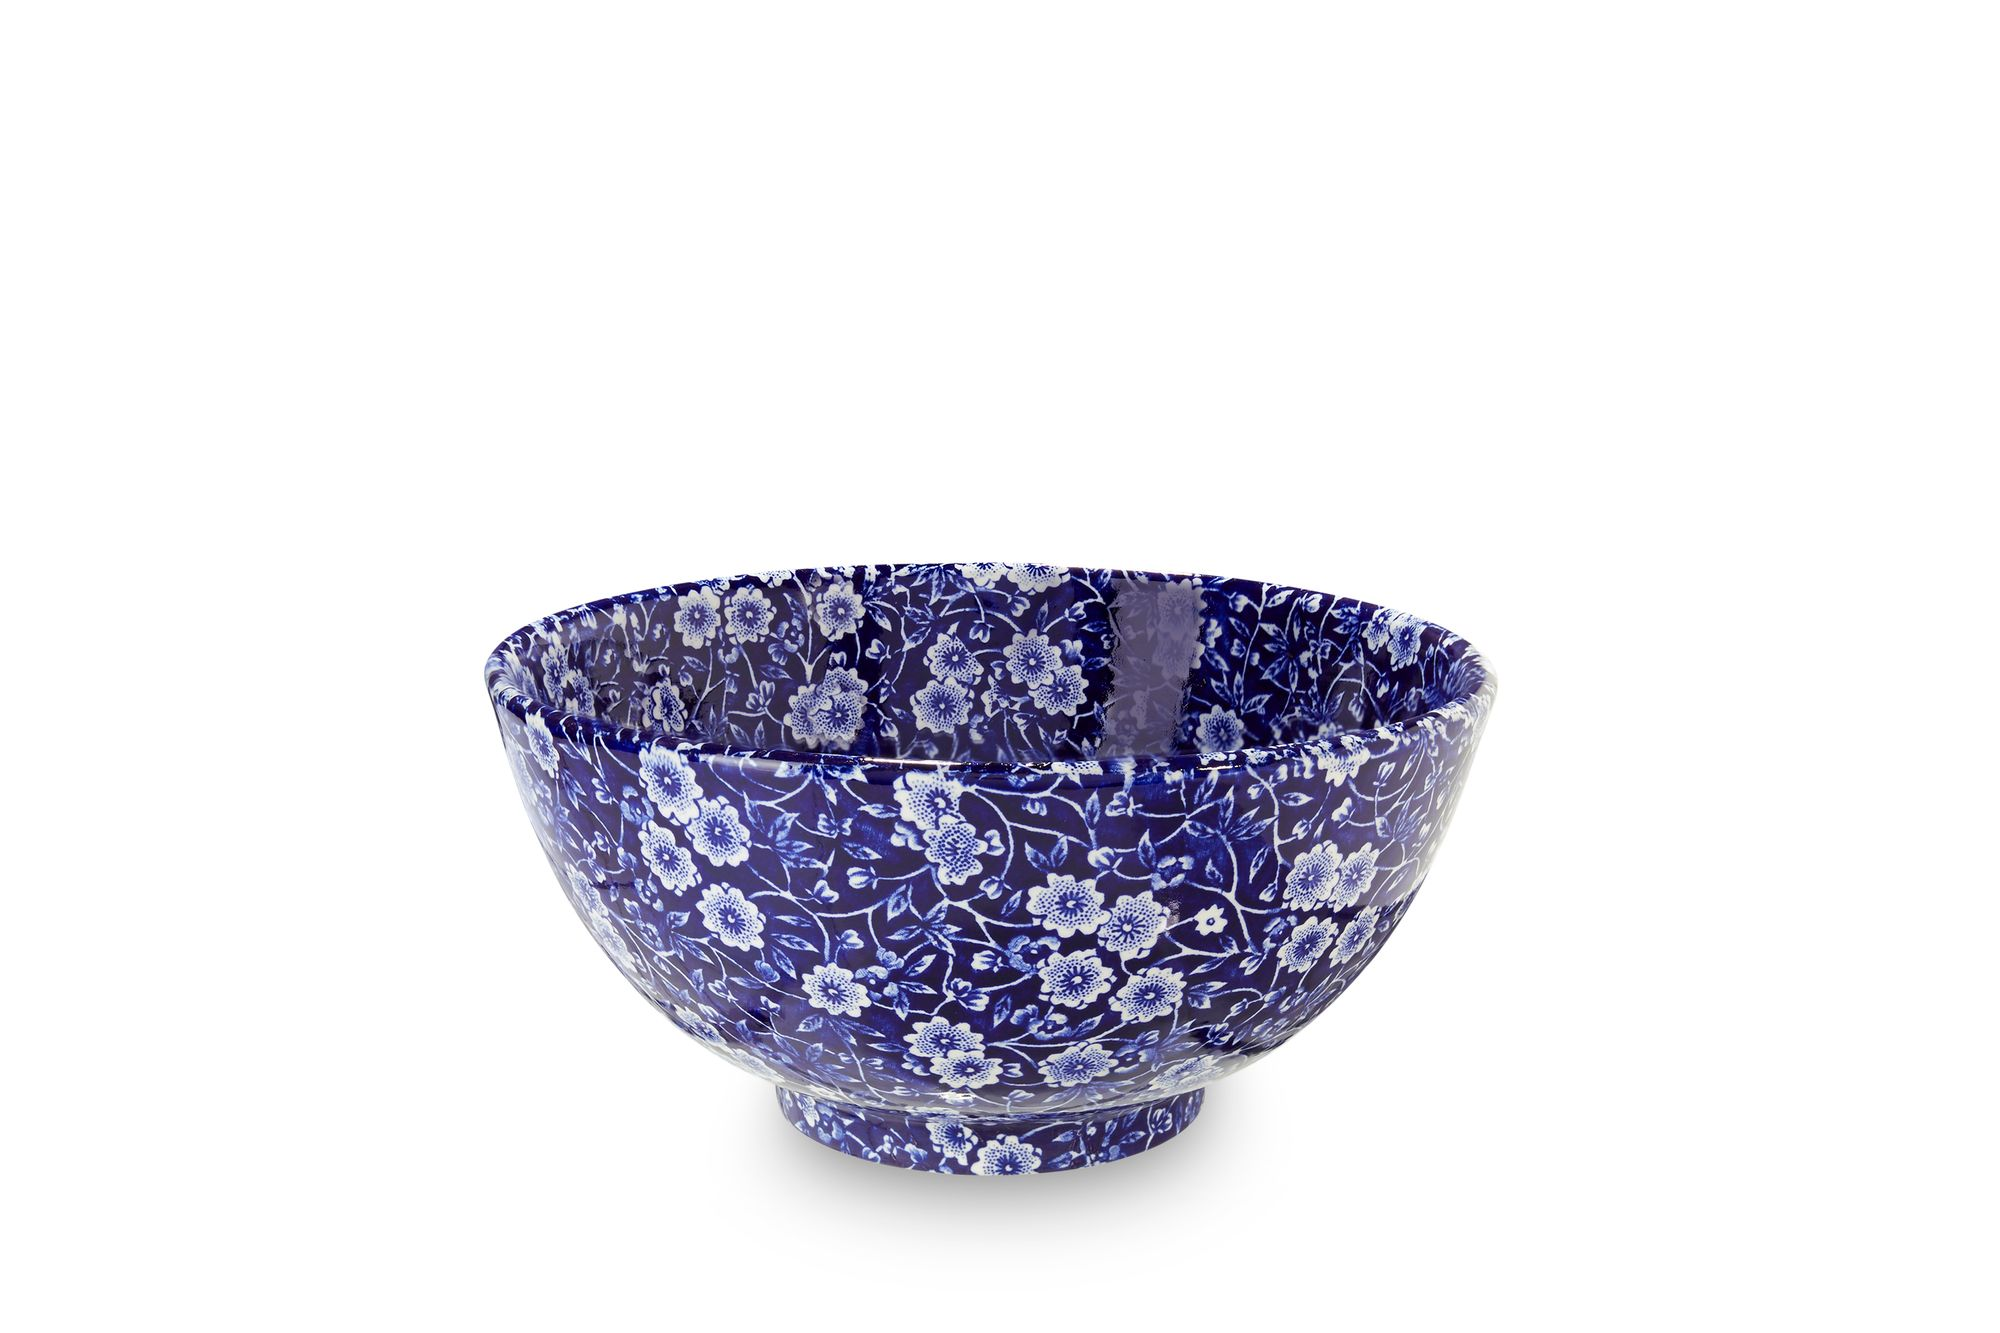 Burleigh Blue Calico Medium Footed Bowl thumb 1